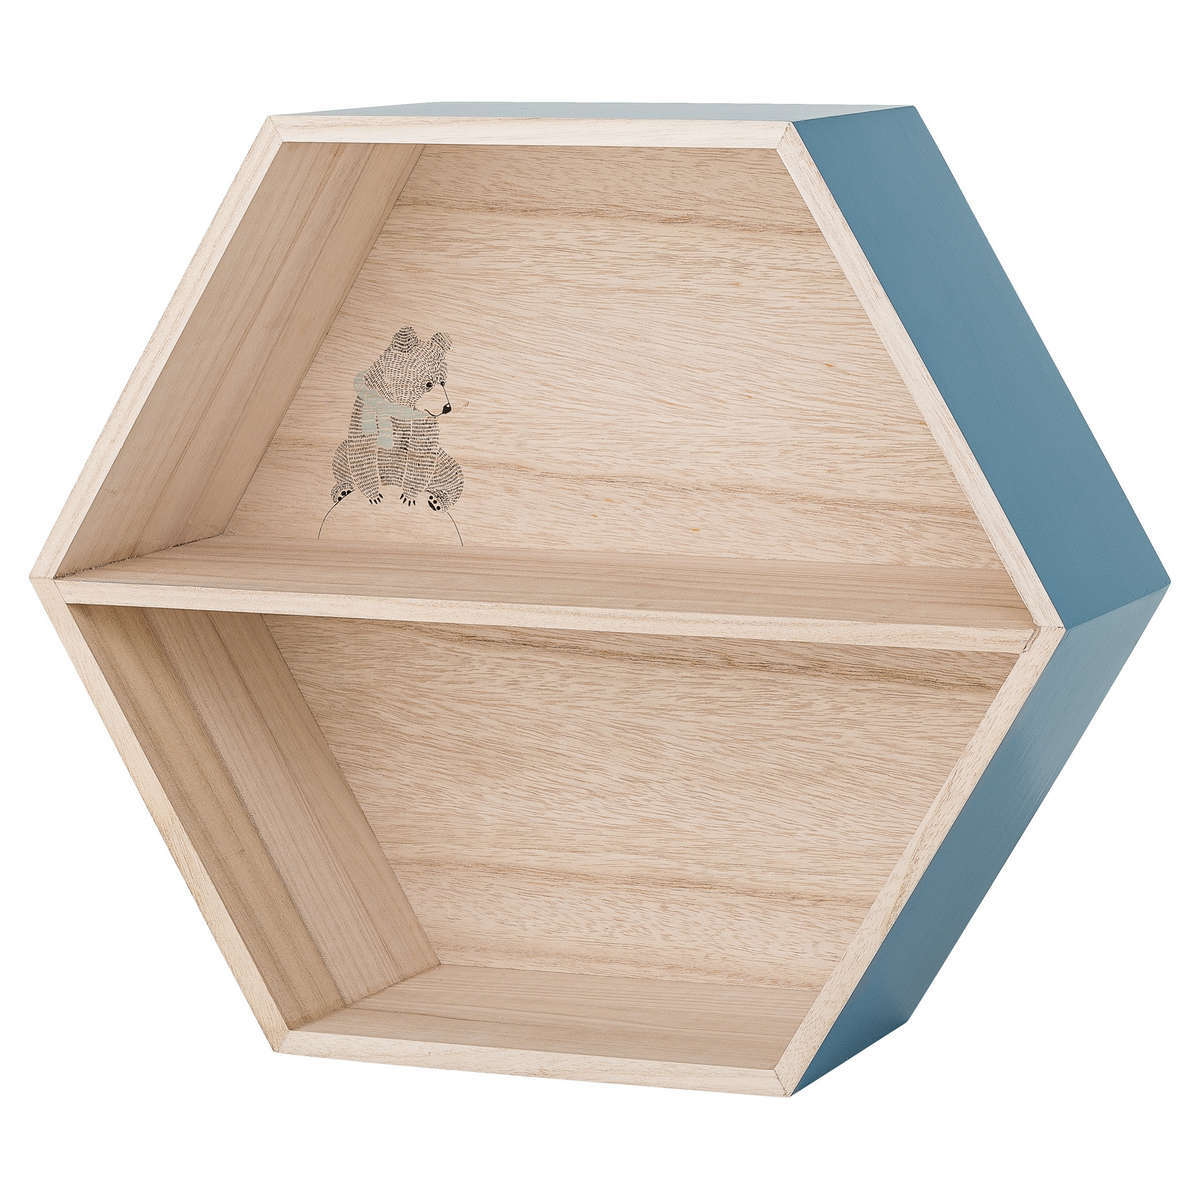 bloomingville etag re hexagonale bois bleu tag re bloomingville sur l 39 armoire de b b. Black Bedroom Furniture Sets. Home Design Ideas